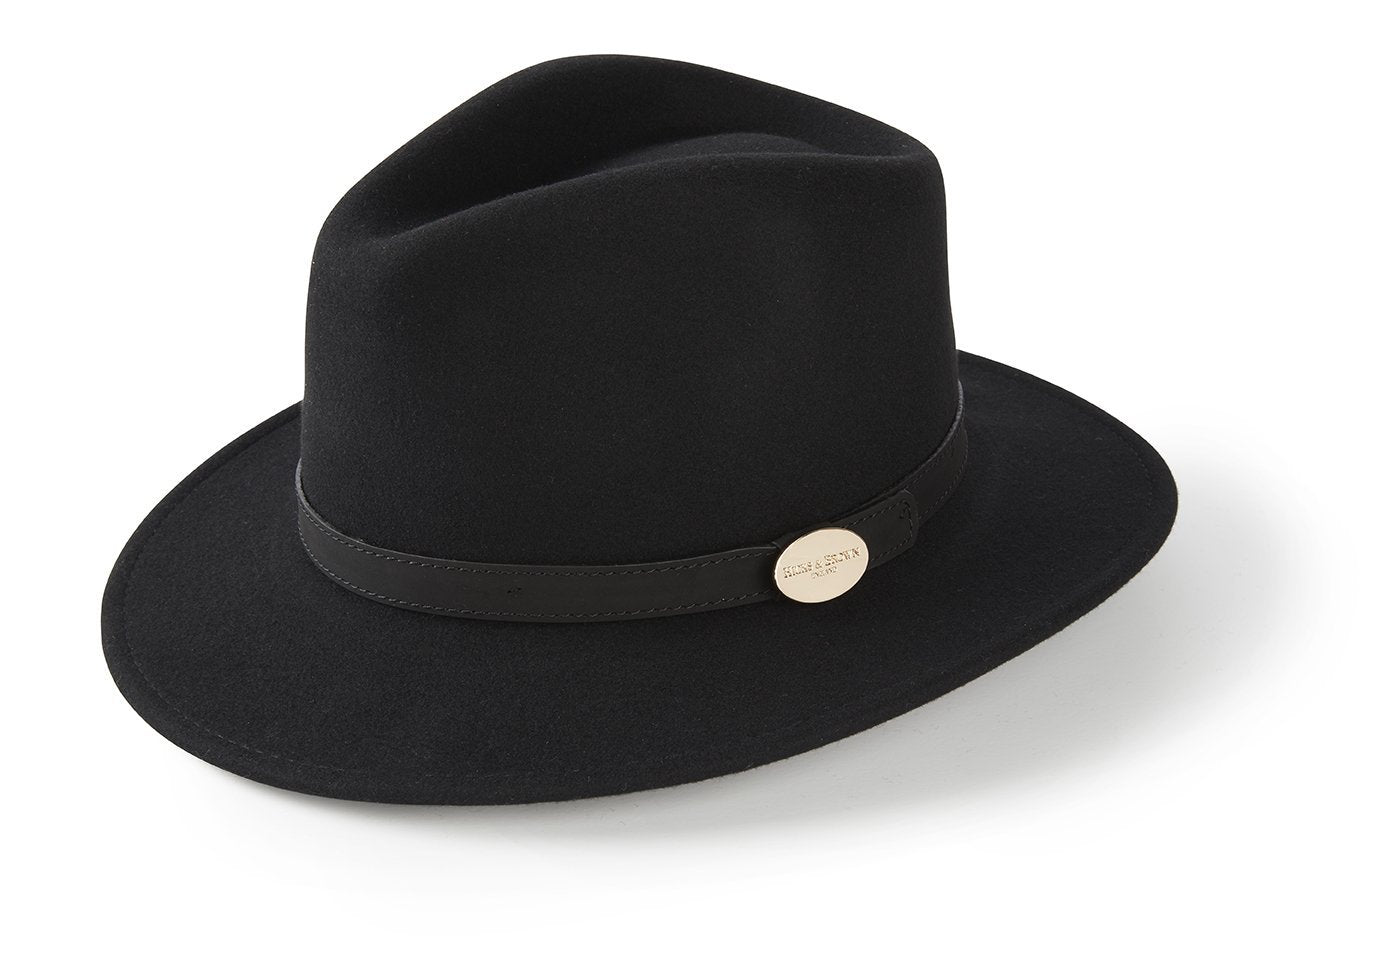 Hicks & Brown Fedora The Suffolk Fedora in Black (No Feather)